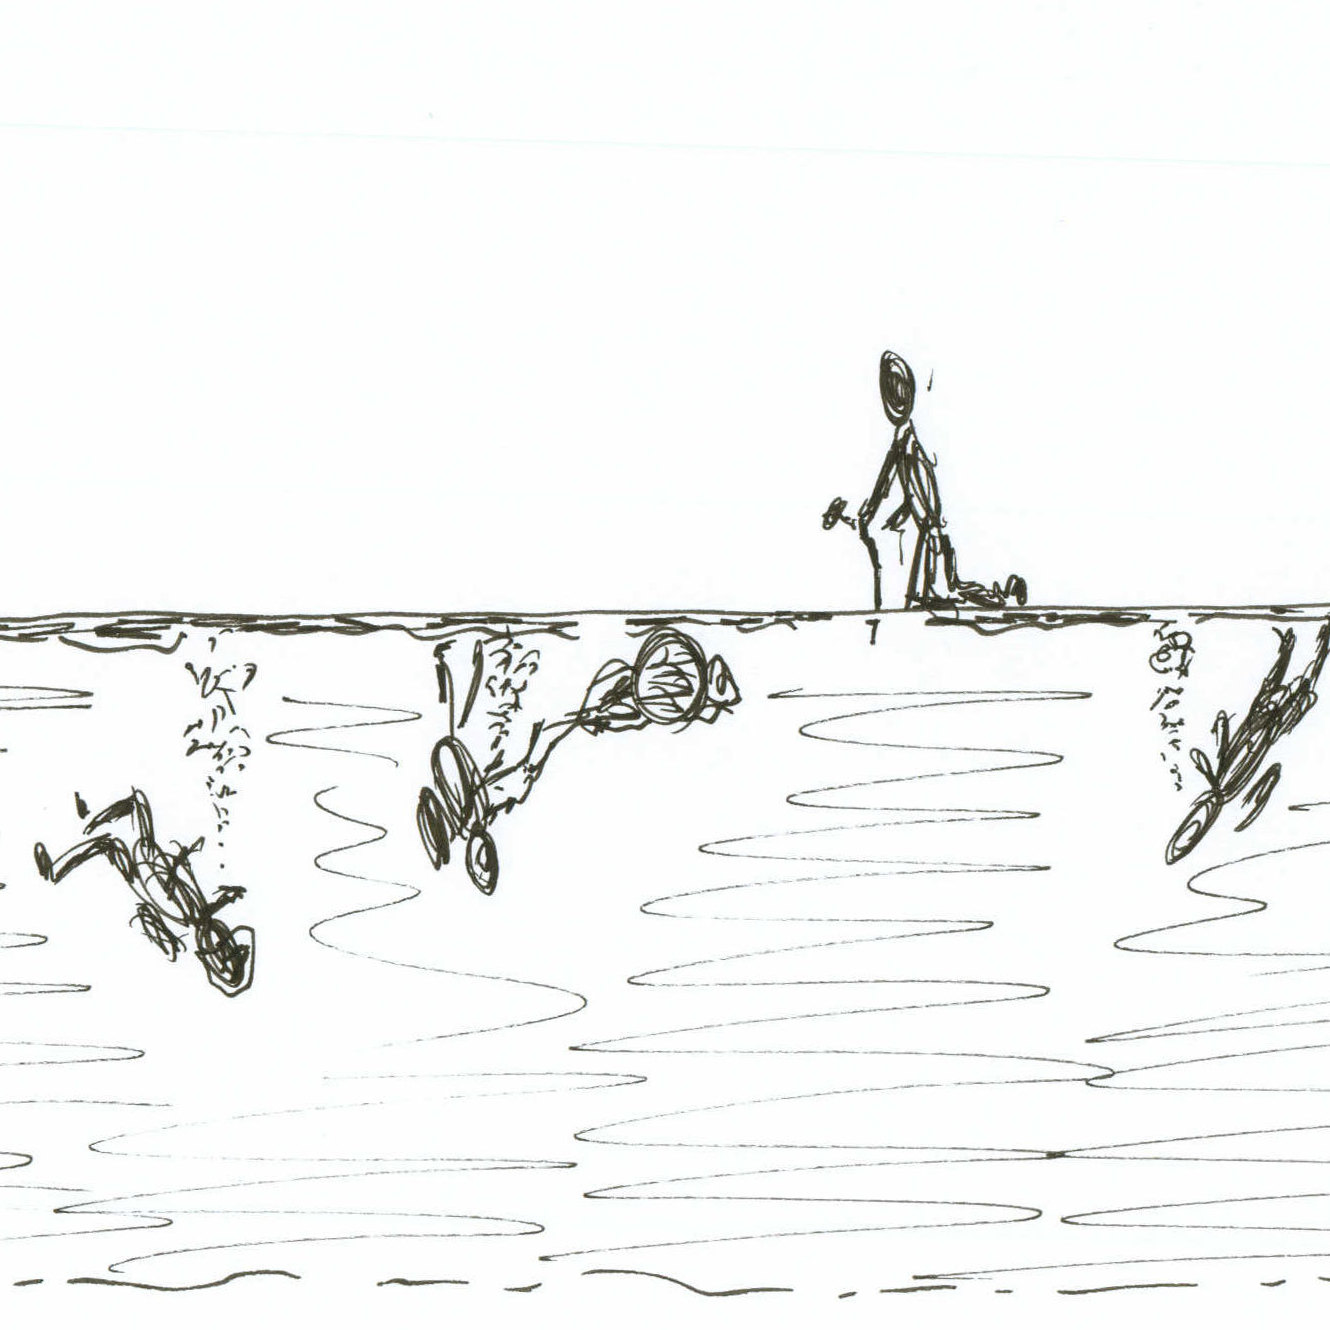 Drawing of divers underwater.